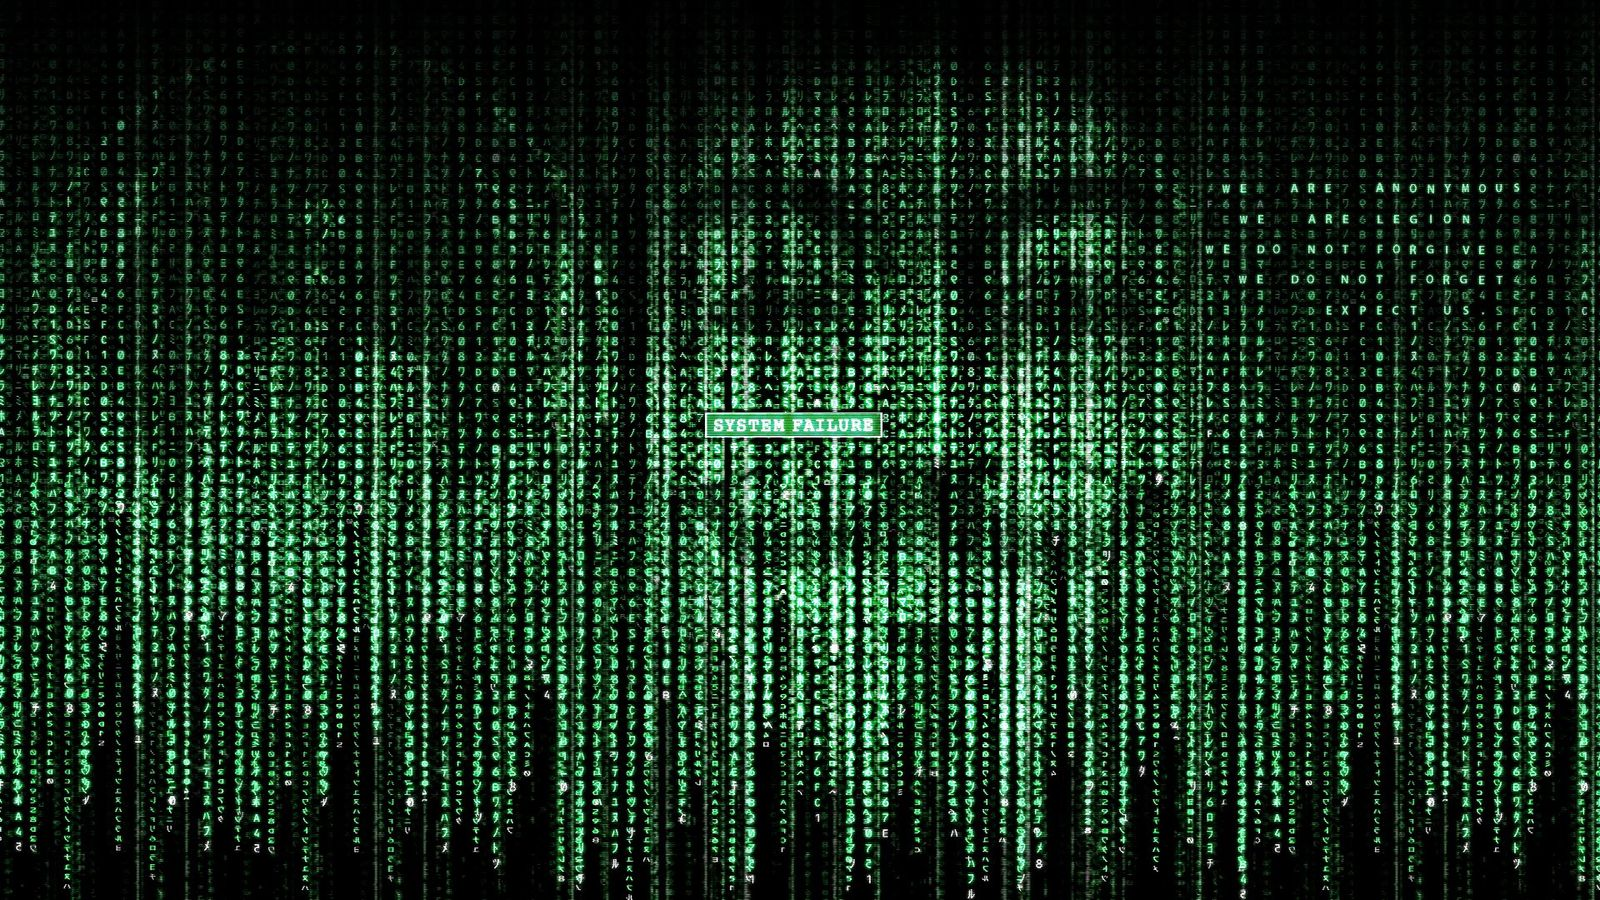 Hacker Full HD Background Picture Image 1600x900